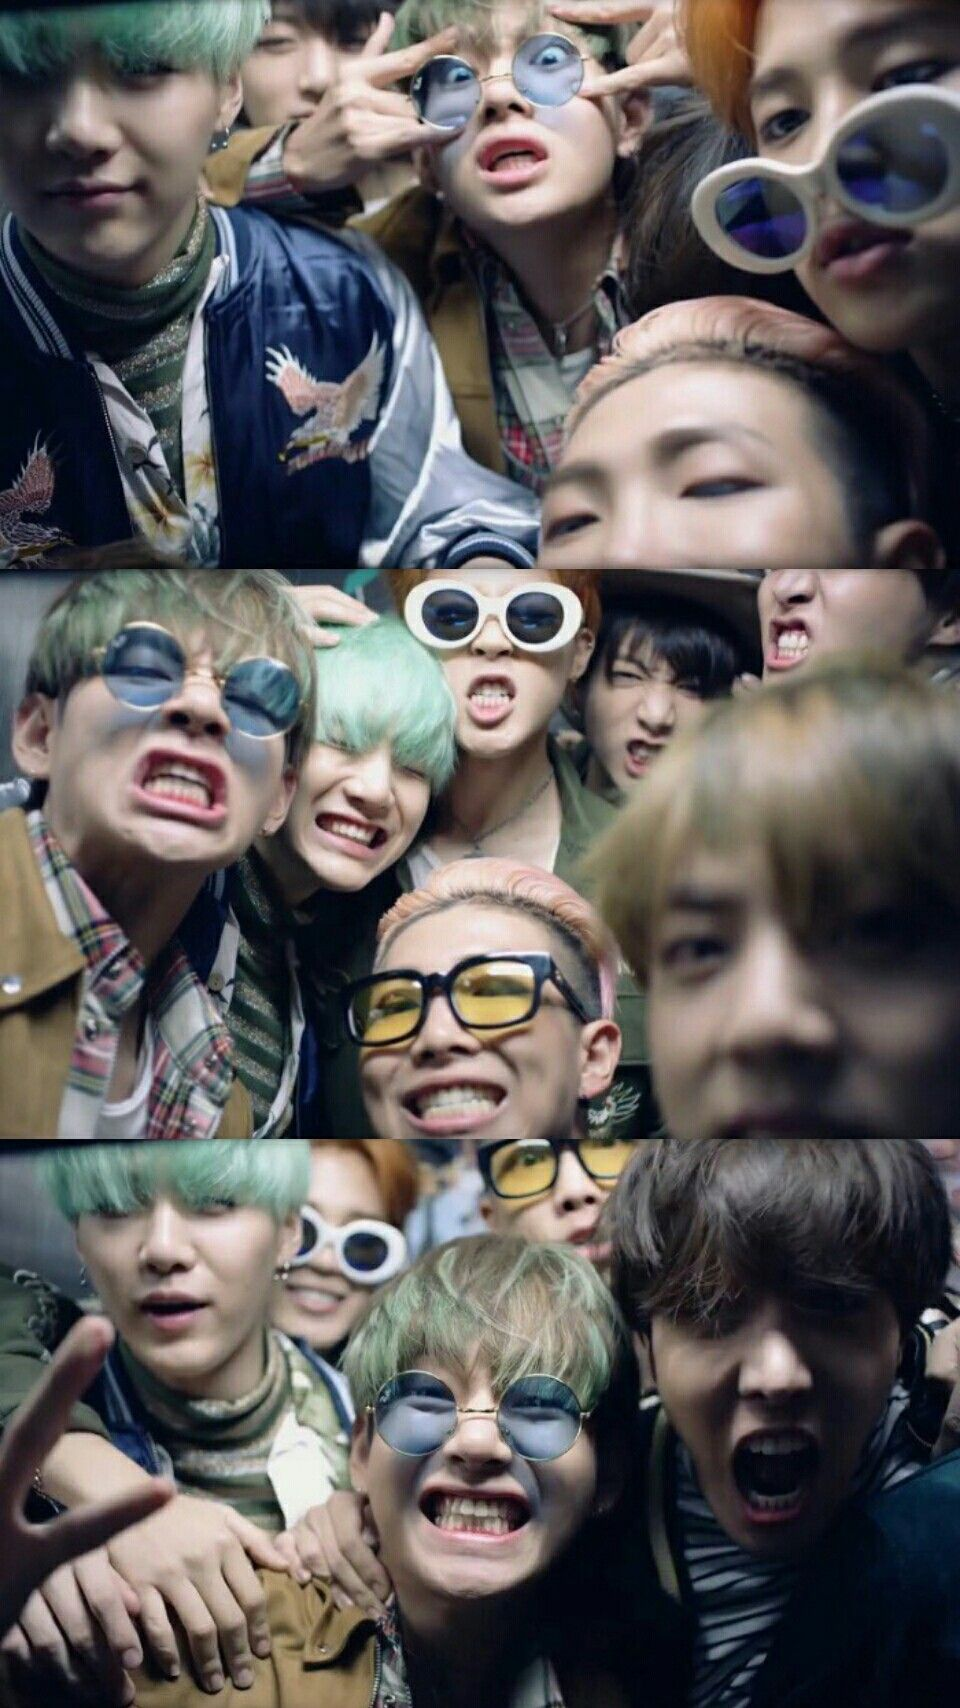 Bts Wallpaper Funny Www Topsimages Com